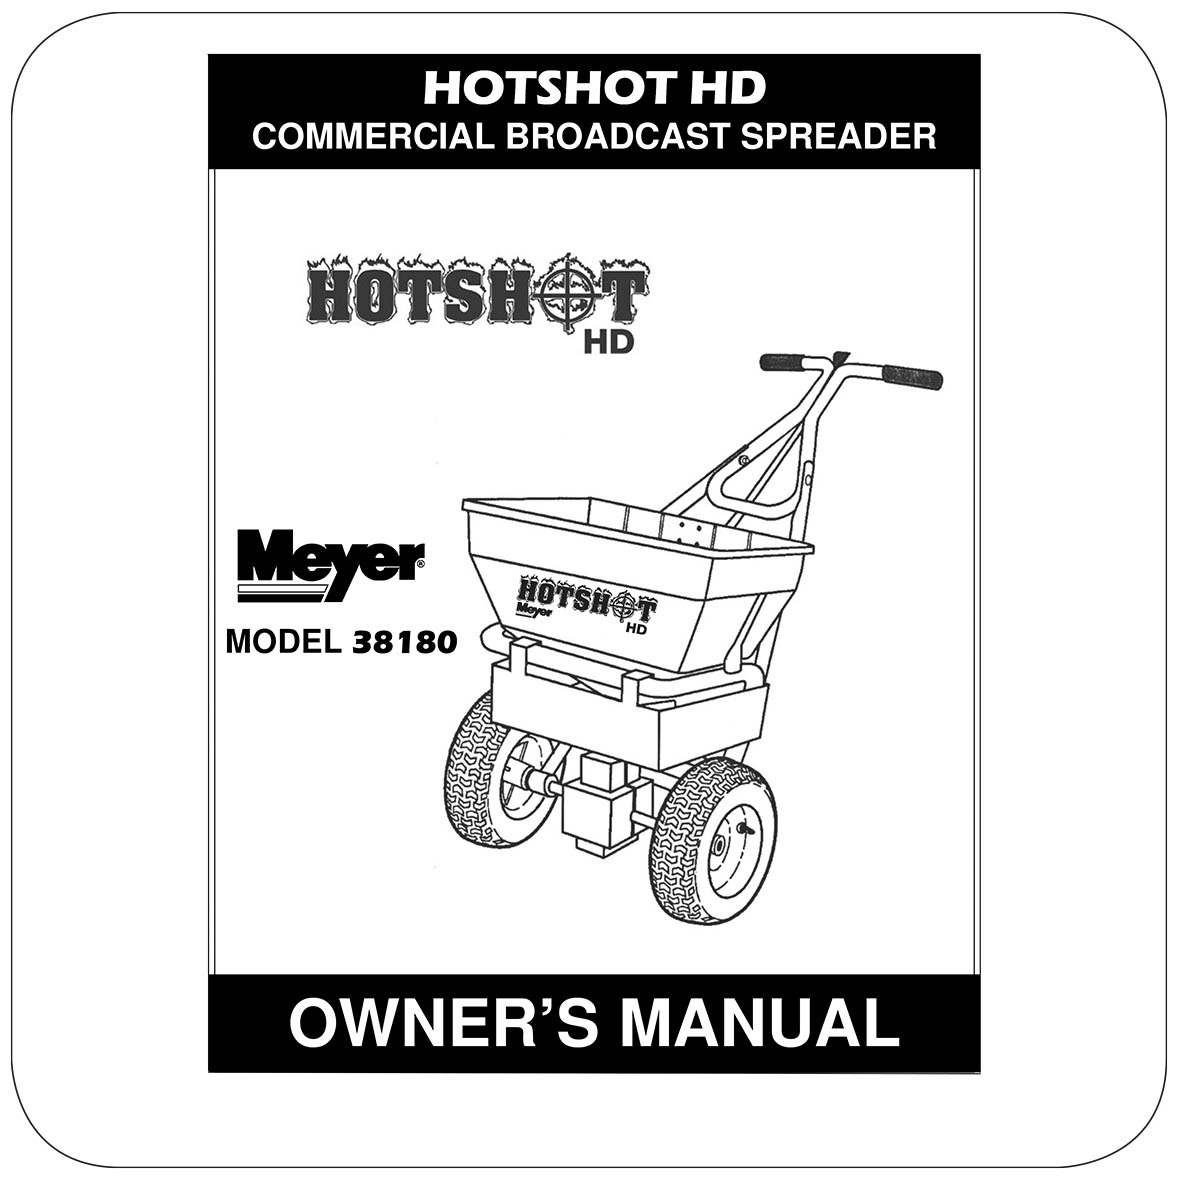 Owners Manual HotShot 70HD - 38180